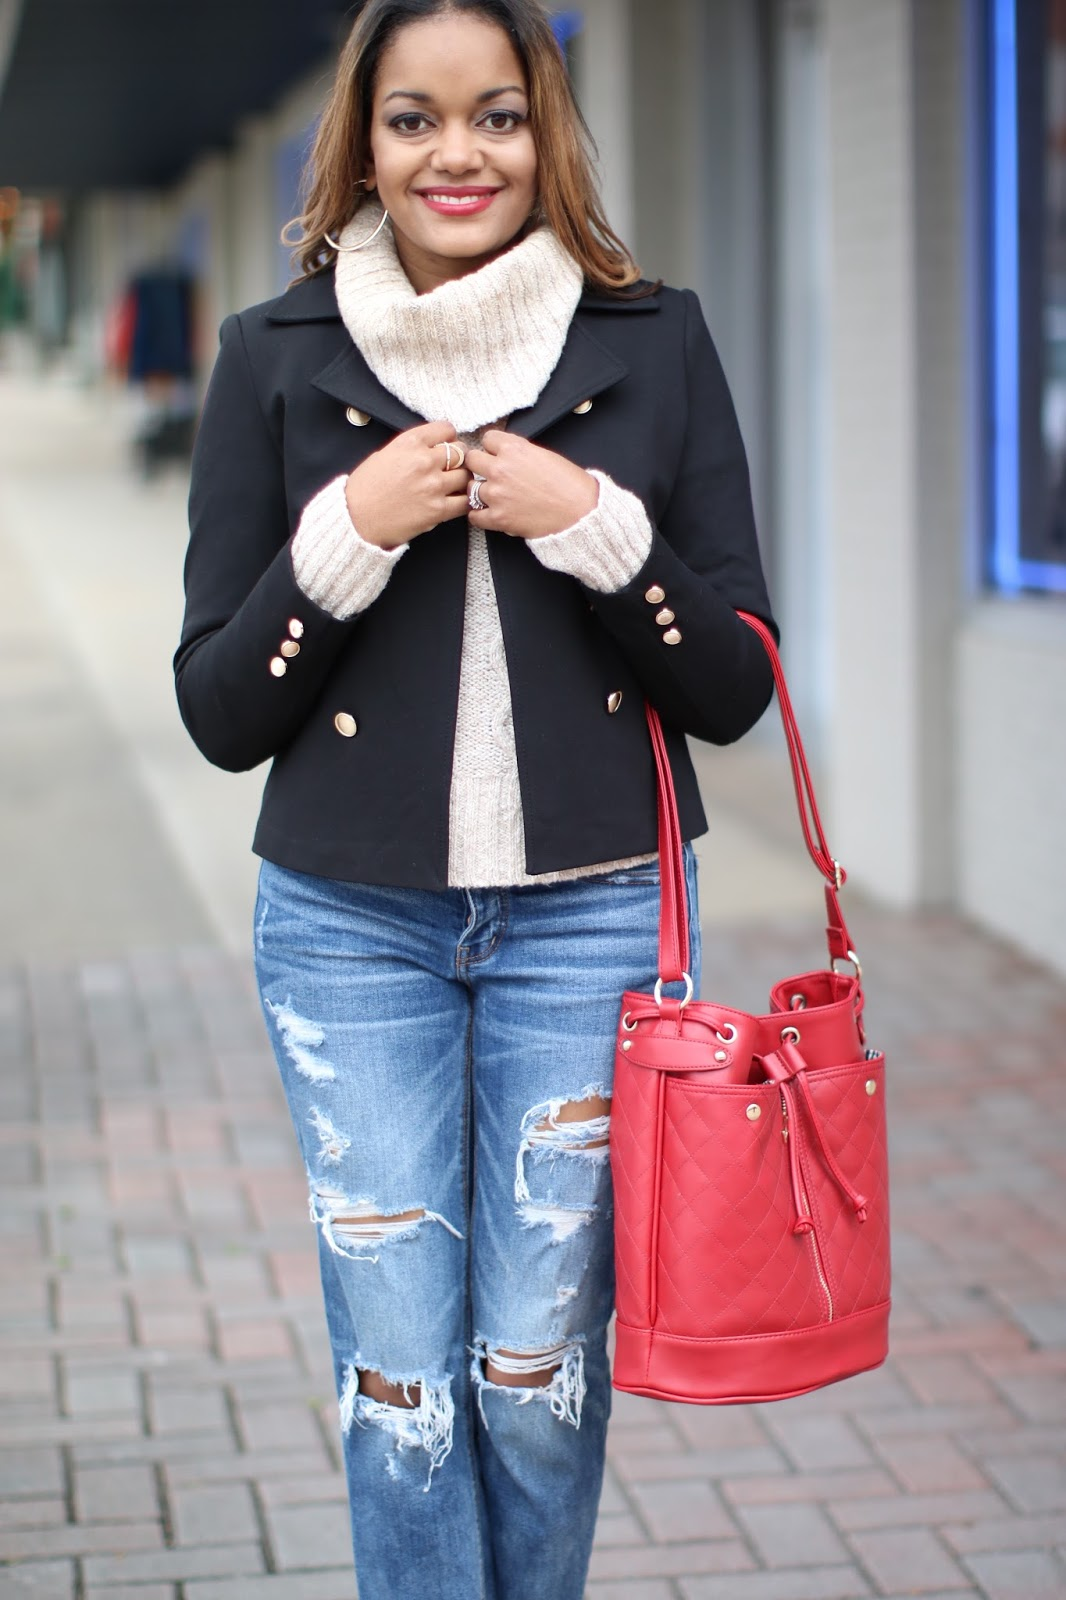 h&m military style jacket, cable knit turtleneck, american eagle ripped jeans, zara shoes, justfab bucket bag, fashion blogger, dallas blogger, detroit blogger, olivia palermo inspired, red lipstick on brown skin, budget friendly fashion, look for less